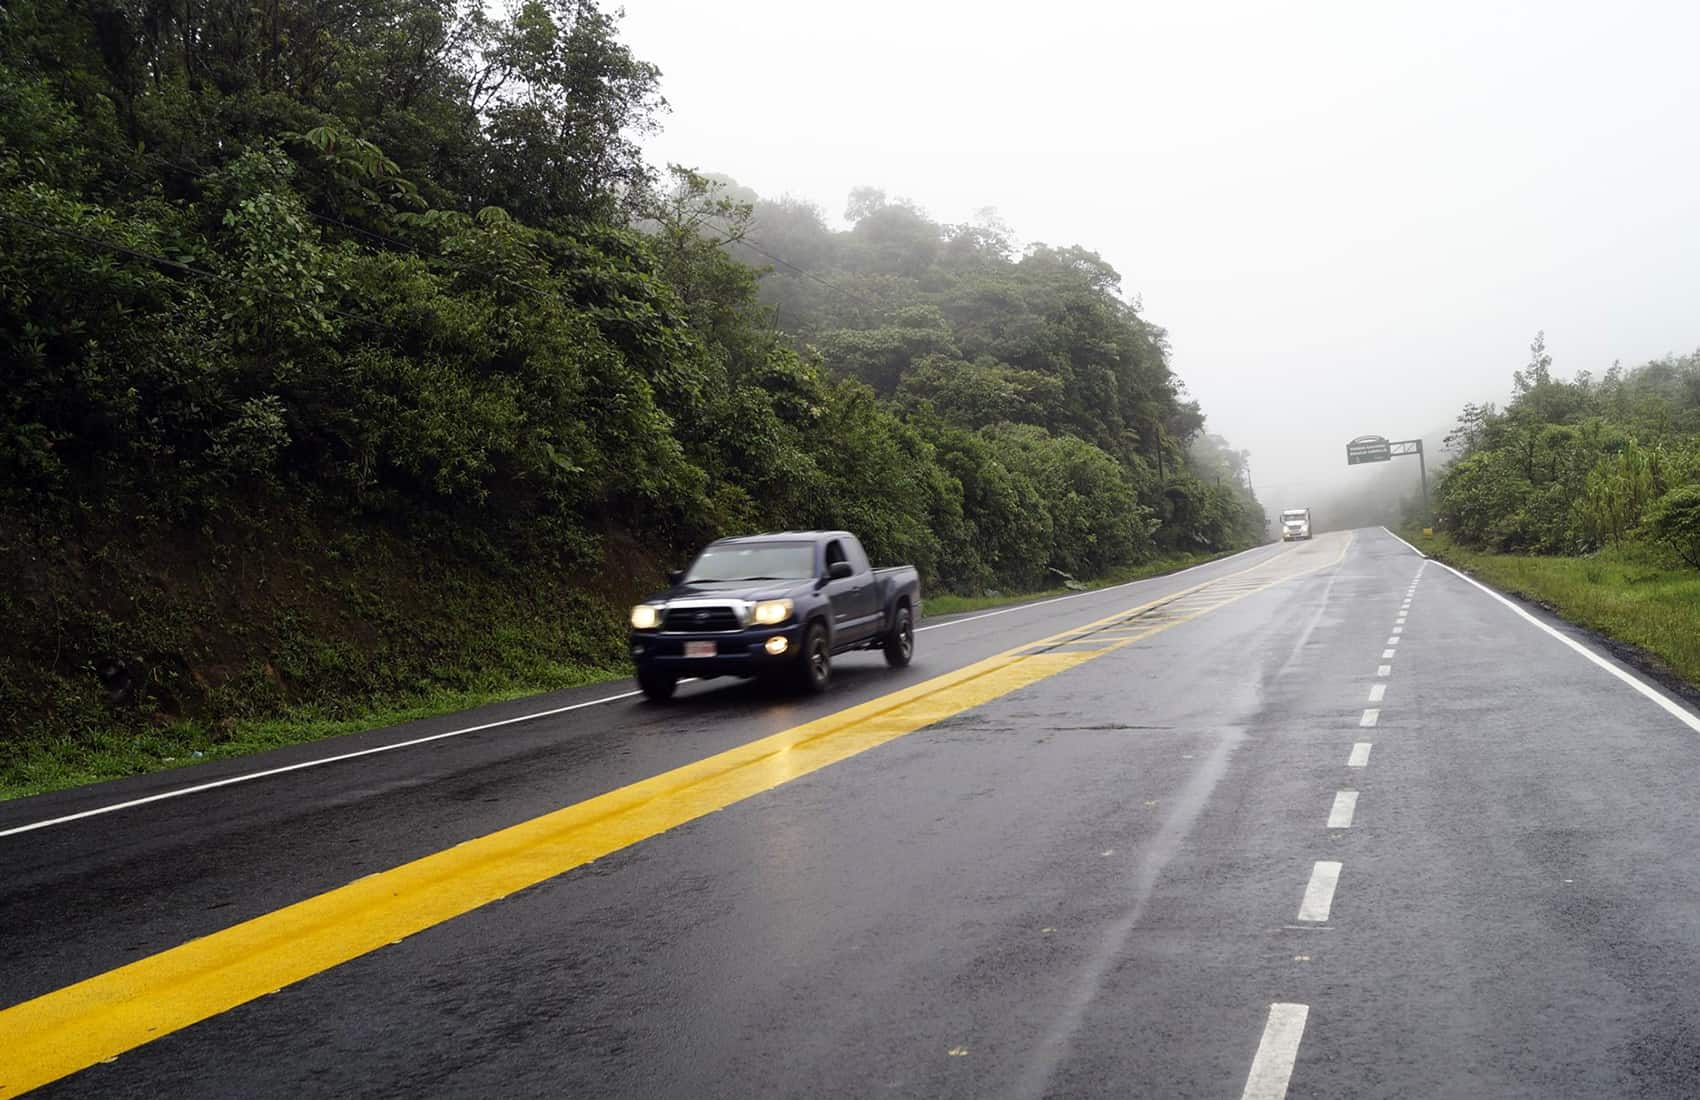 Route 32 to Limón